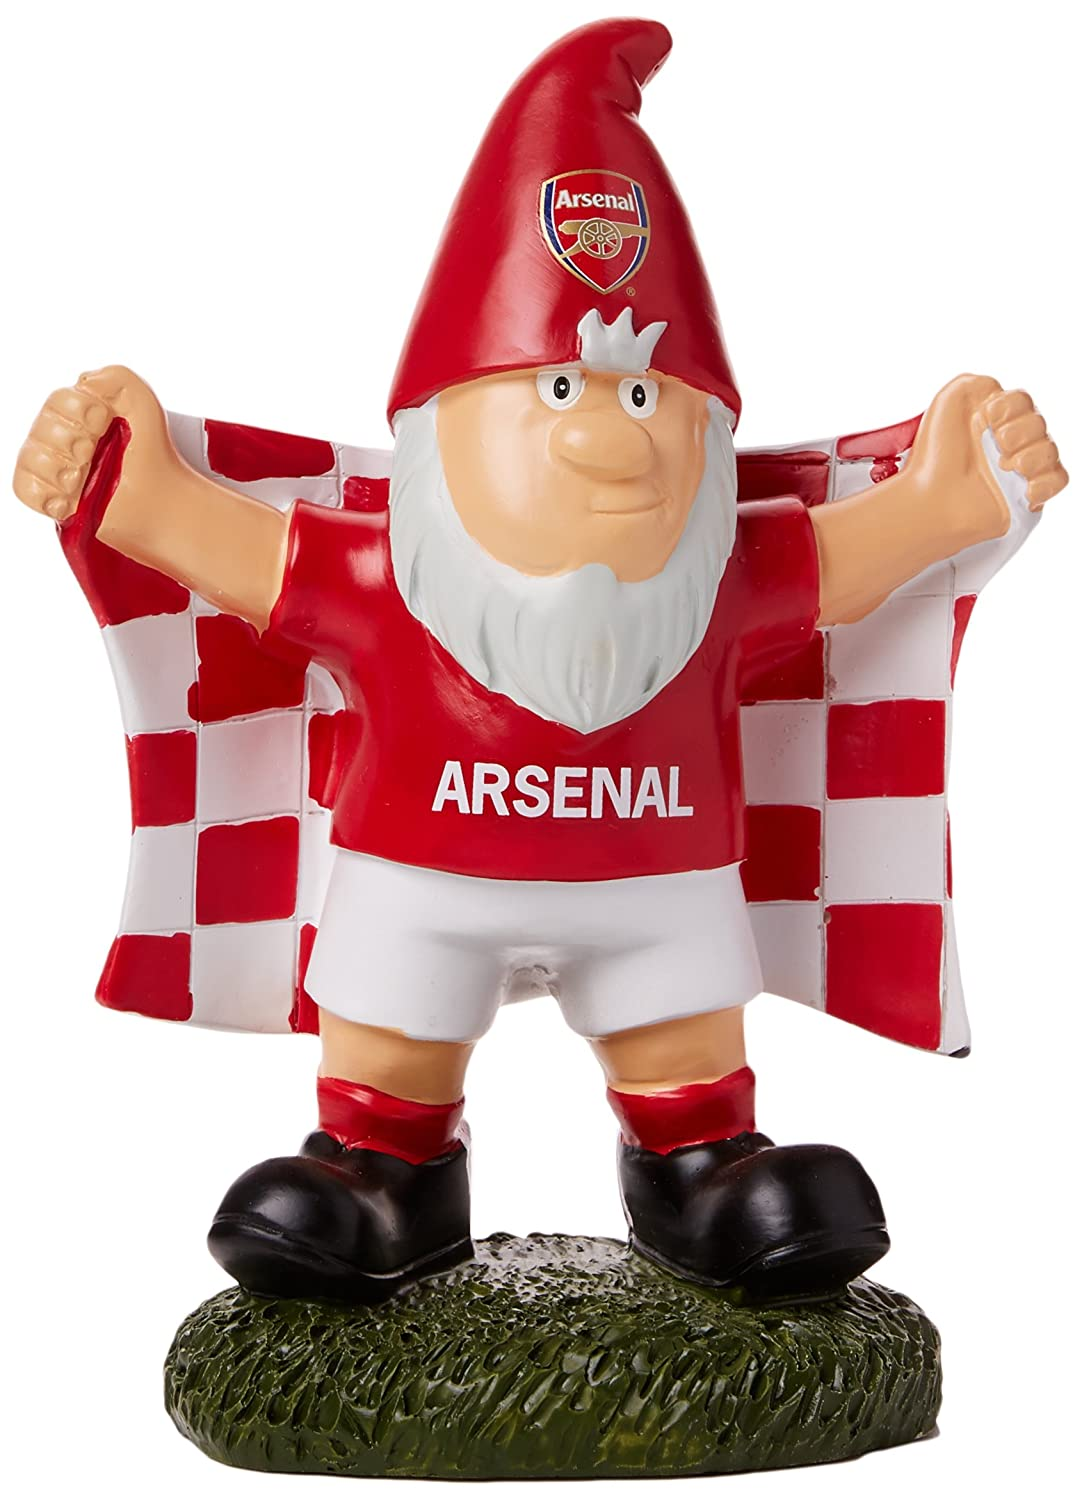 Arsenal FC Official Champ Football Crest Garden Gnome UTSG9056_1